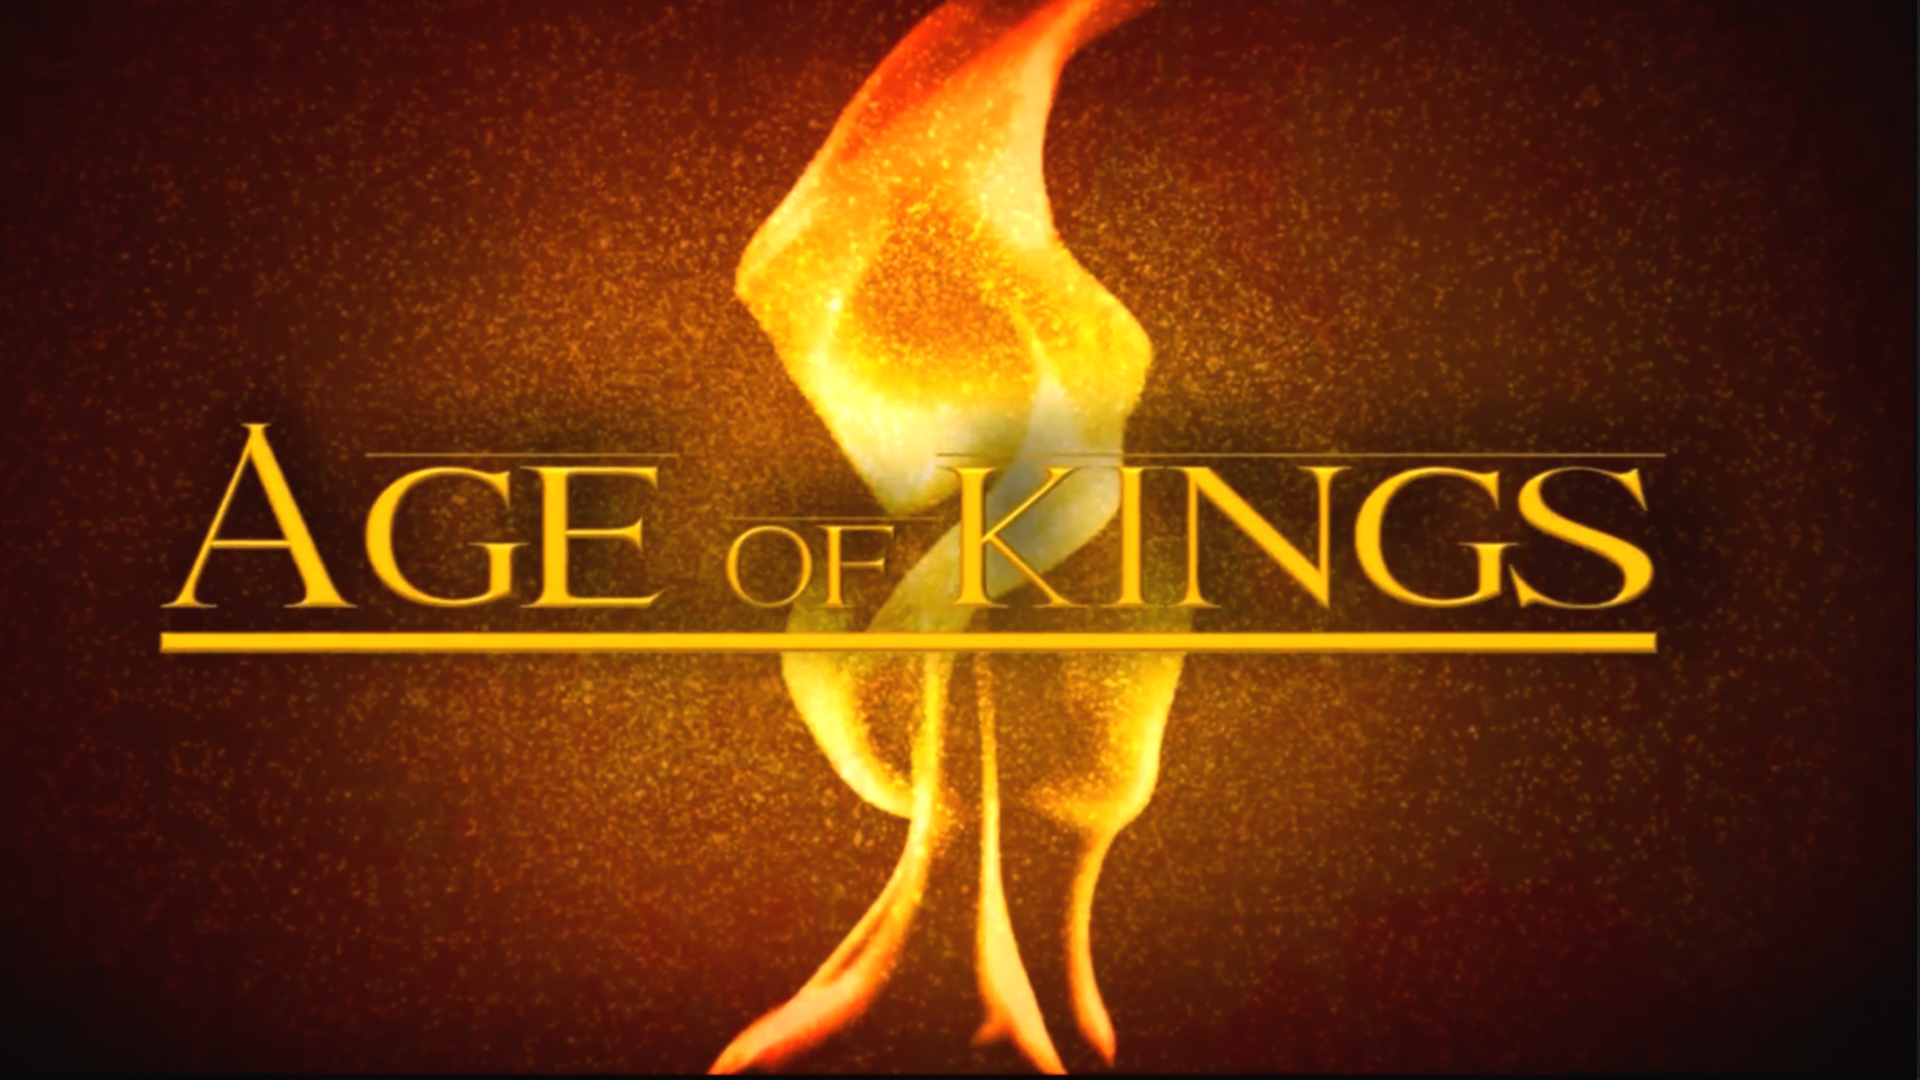 Age of Kings Web Header.png